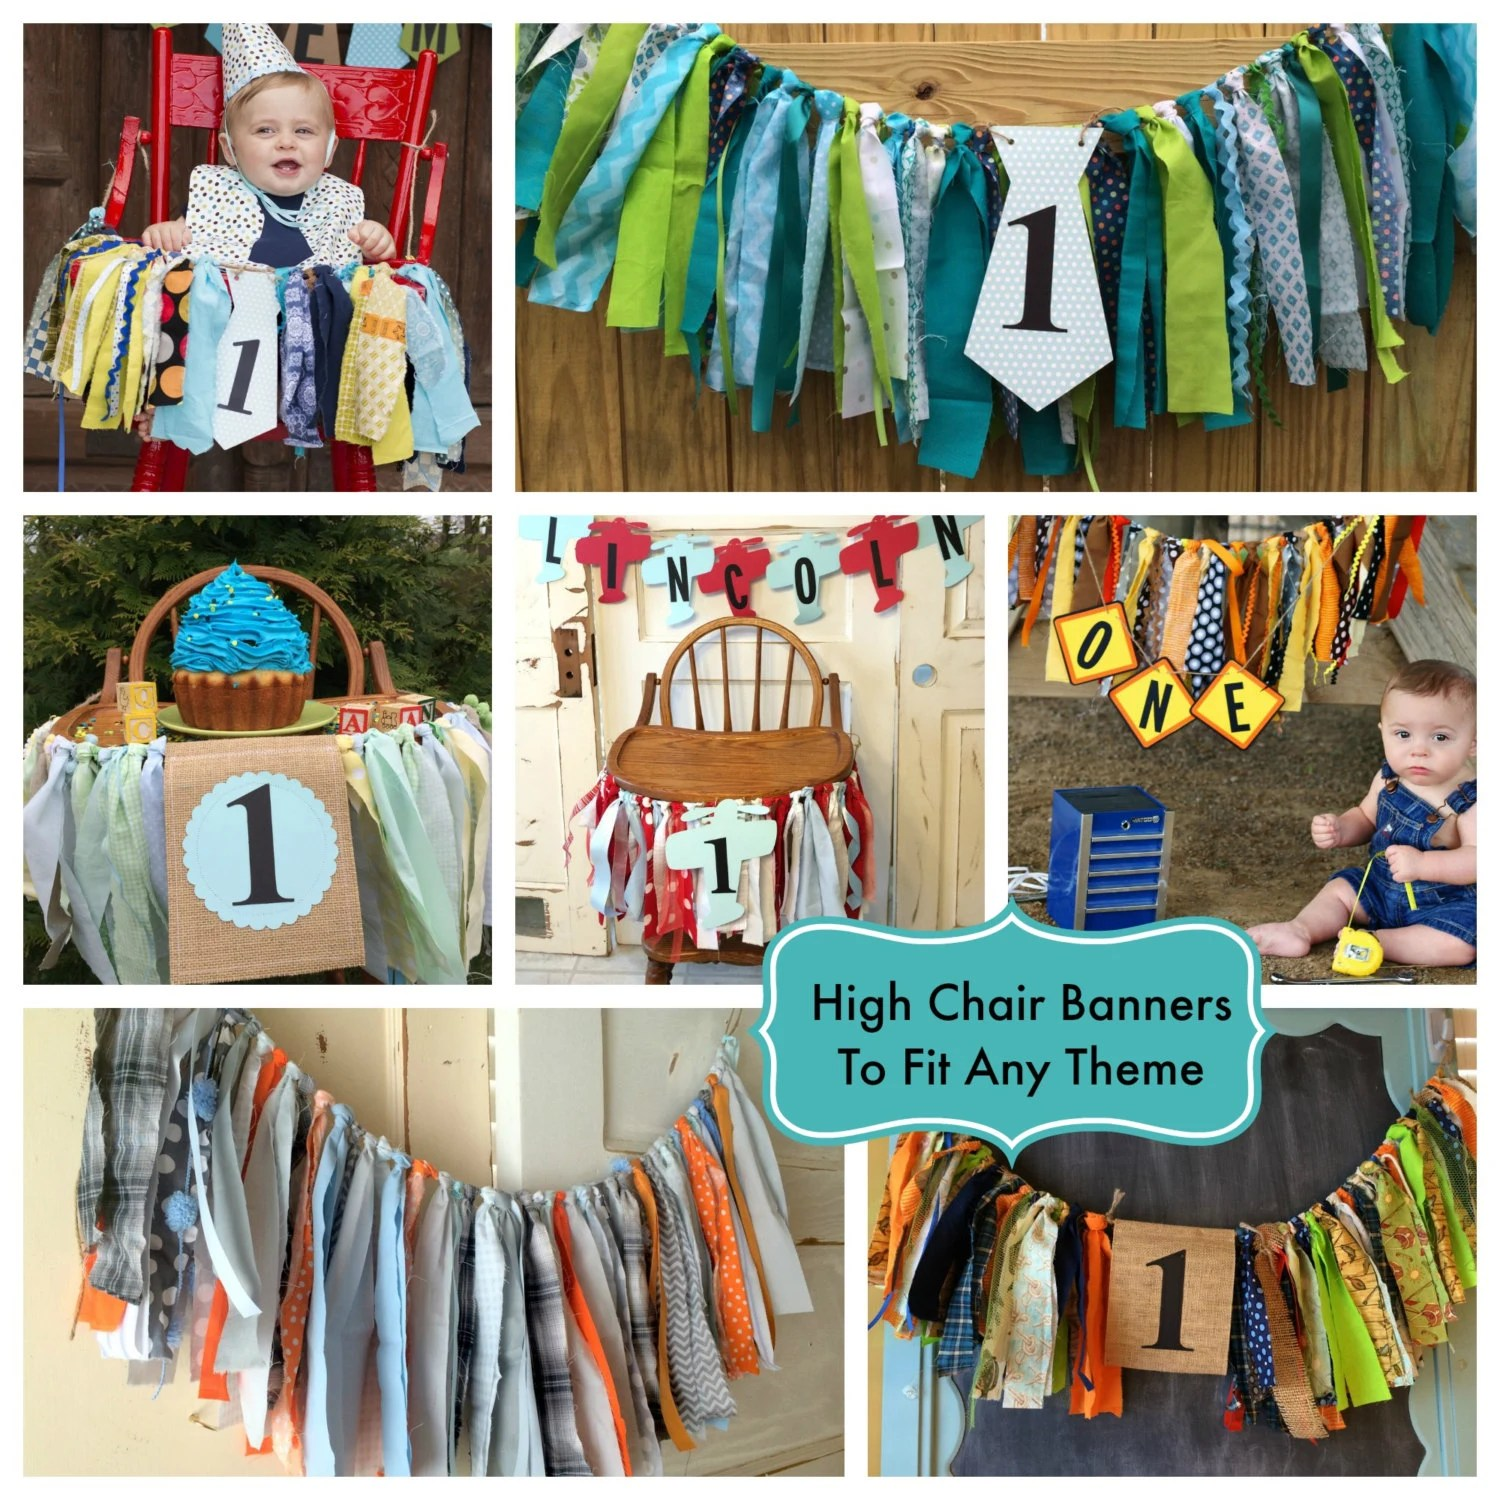 high chair decorations 1st birthday boy overstuffed chairs and ottomans boys banner custom made first